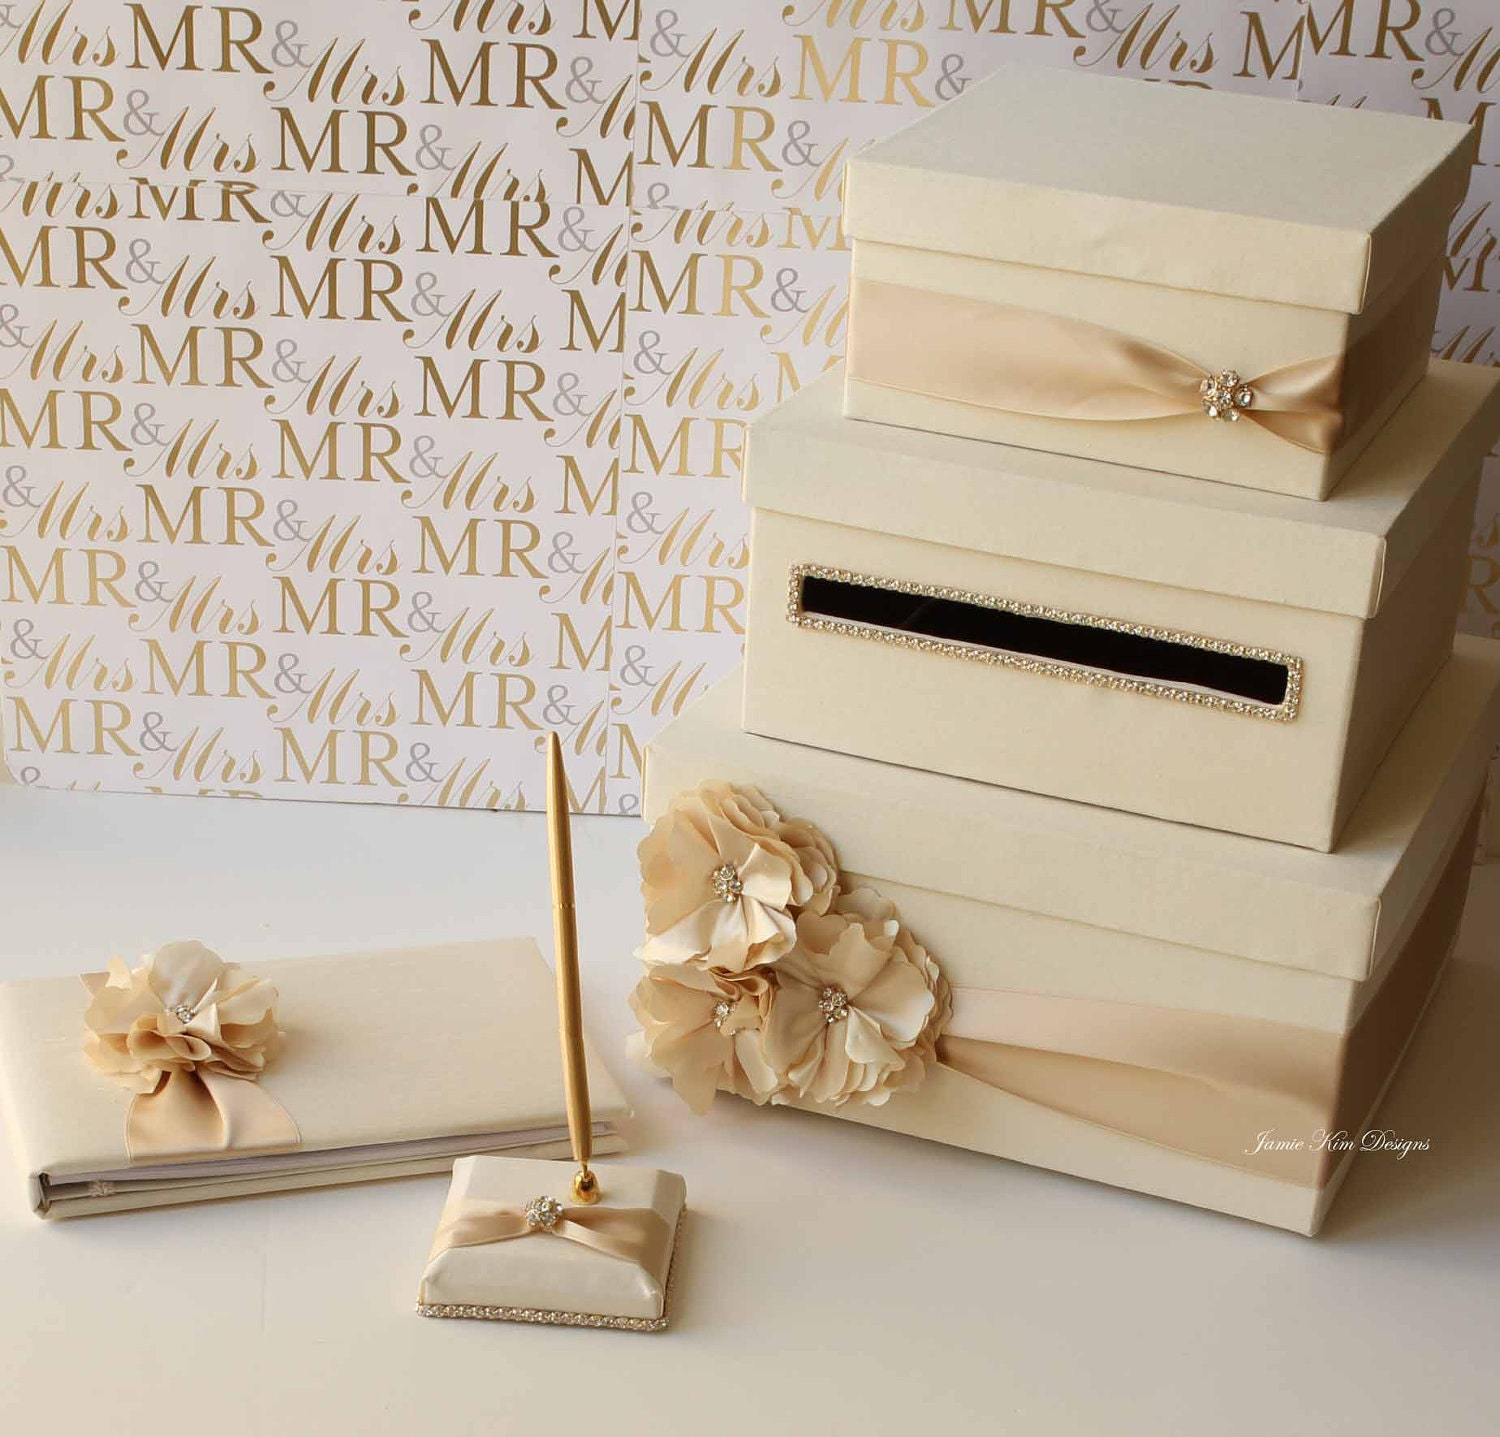 Wedding Reception Gift Card Holder : Wedding Card Box Money Box Gift Card Holder by jamiekimdesigns